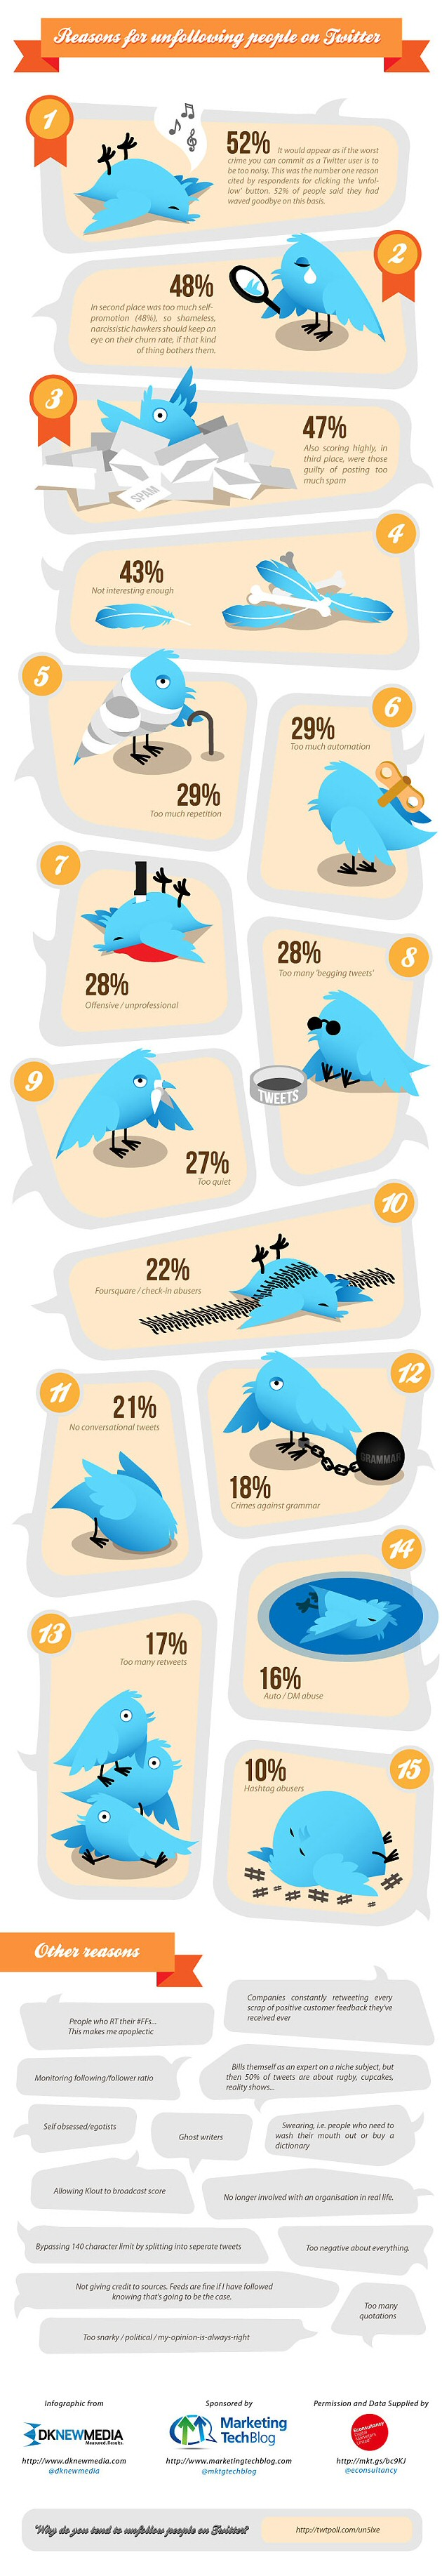 15 razones por las que te hacen unfollow en twitter